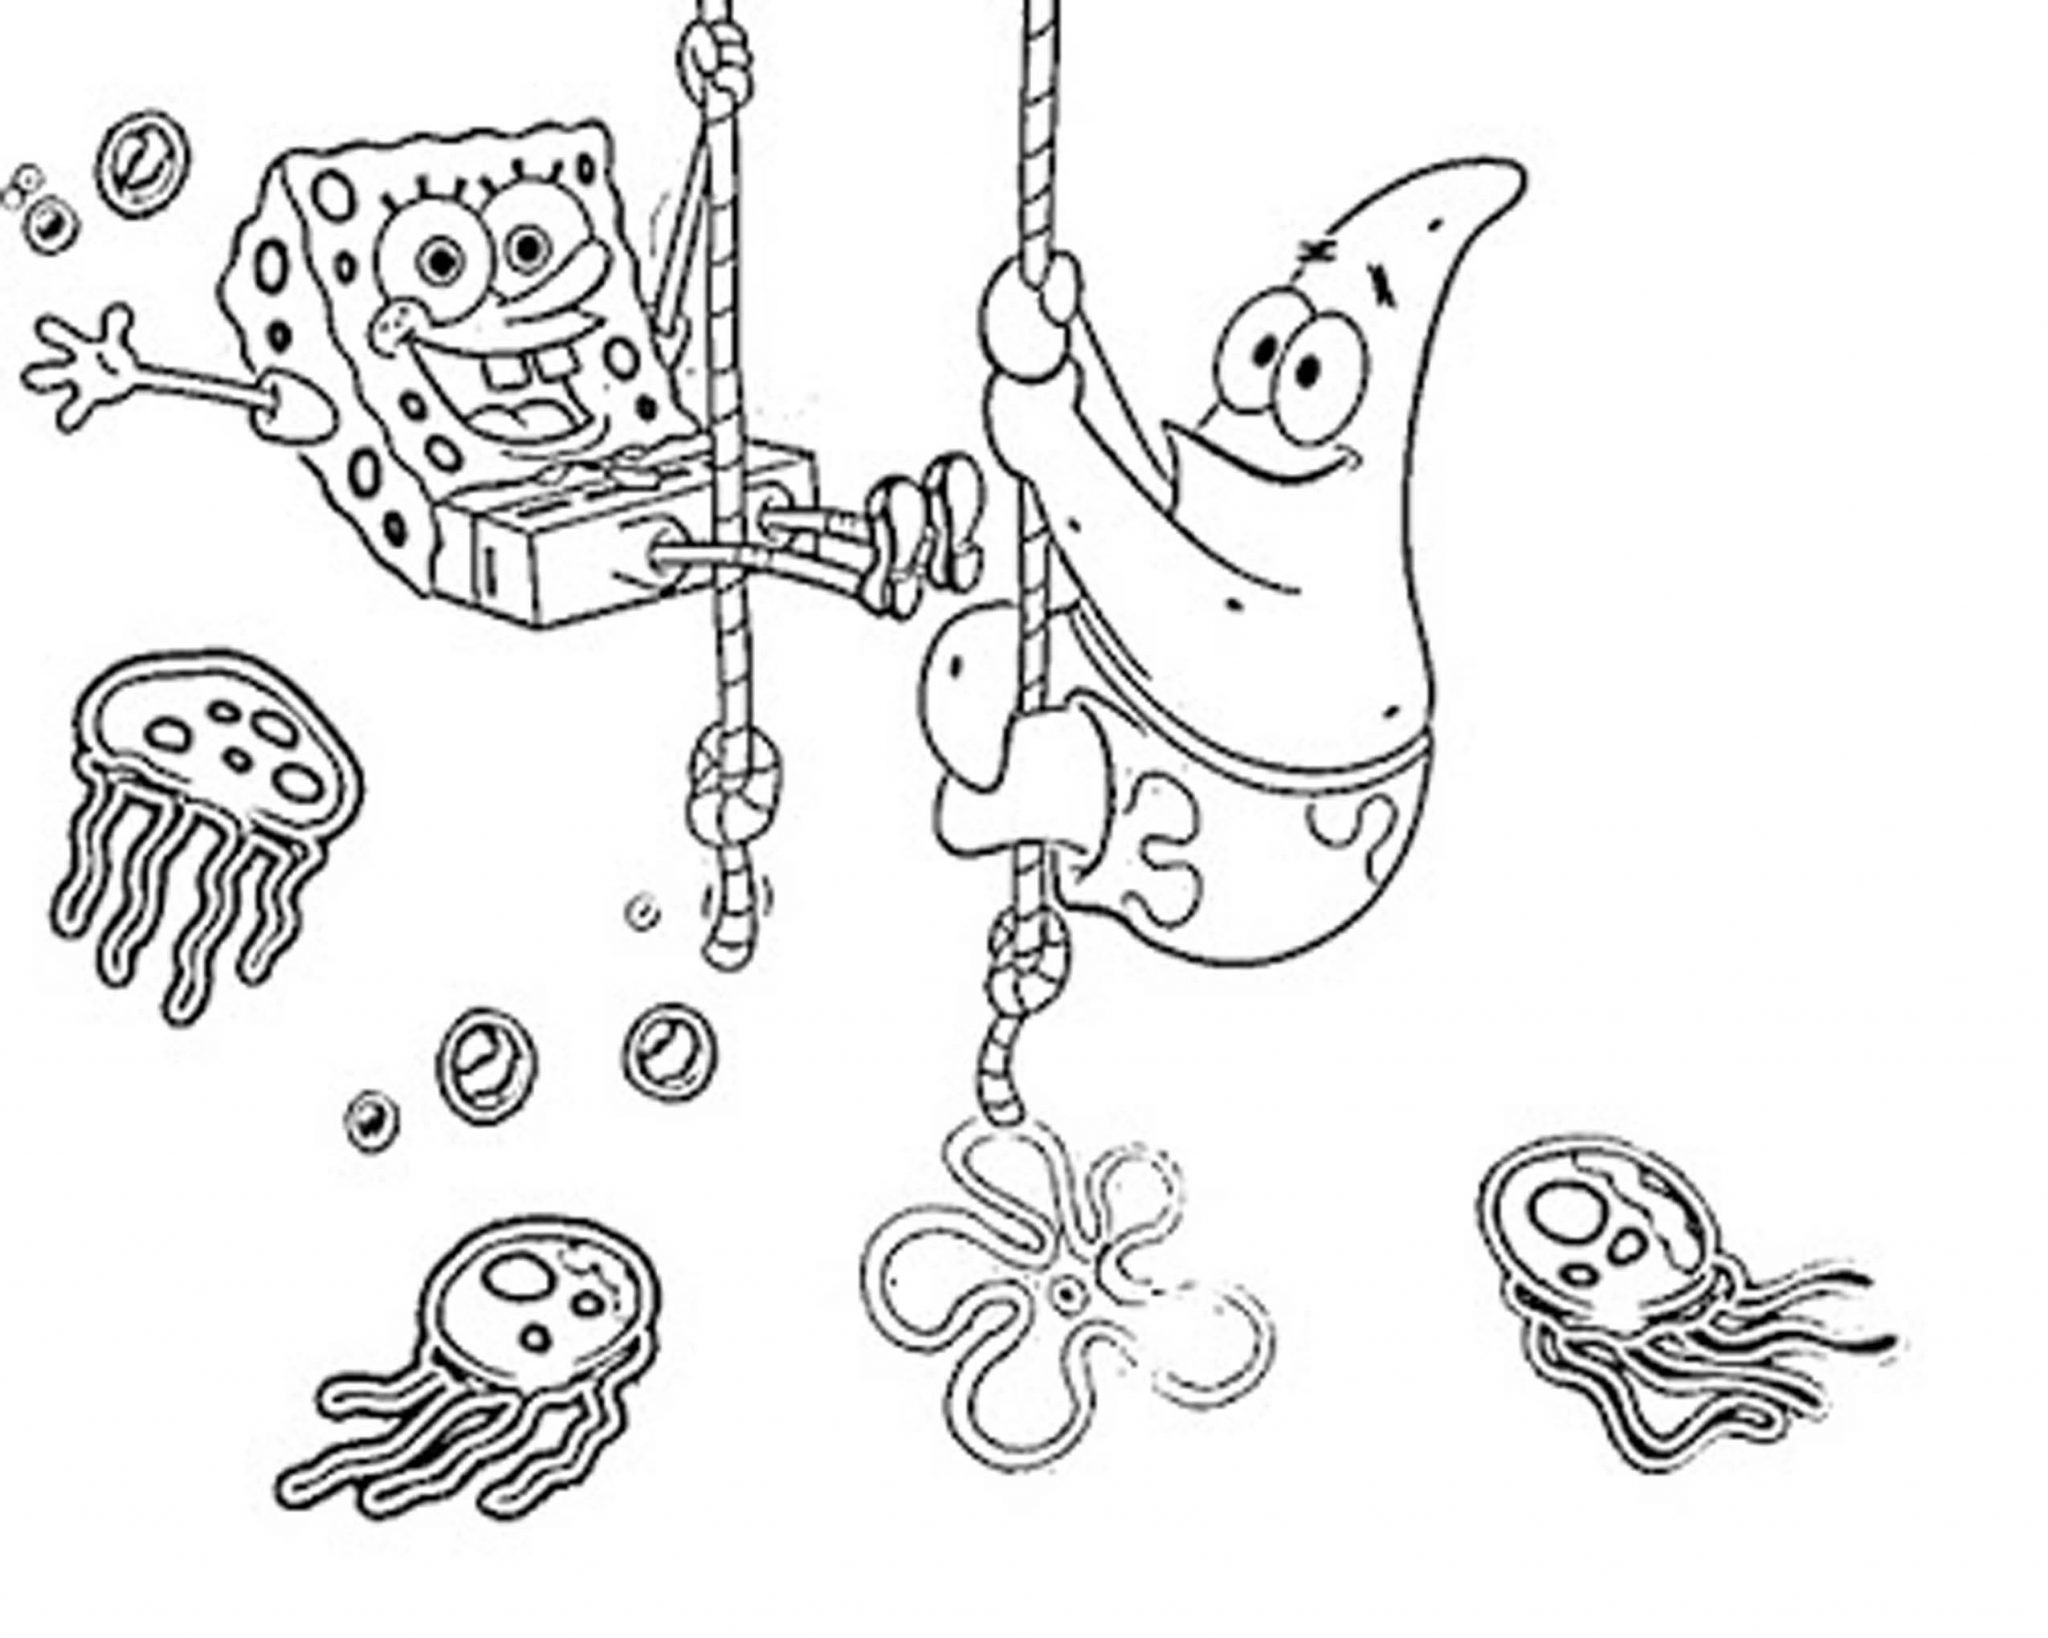 Print & Download - Choosing SpongeBob Coloring Pages For ...